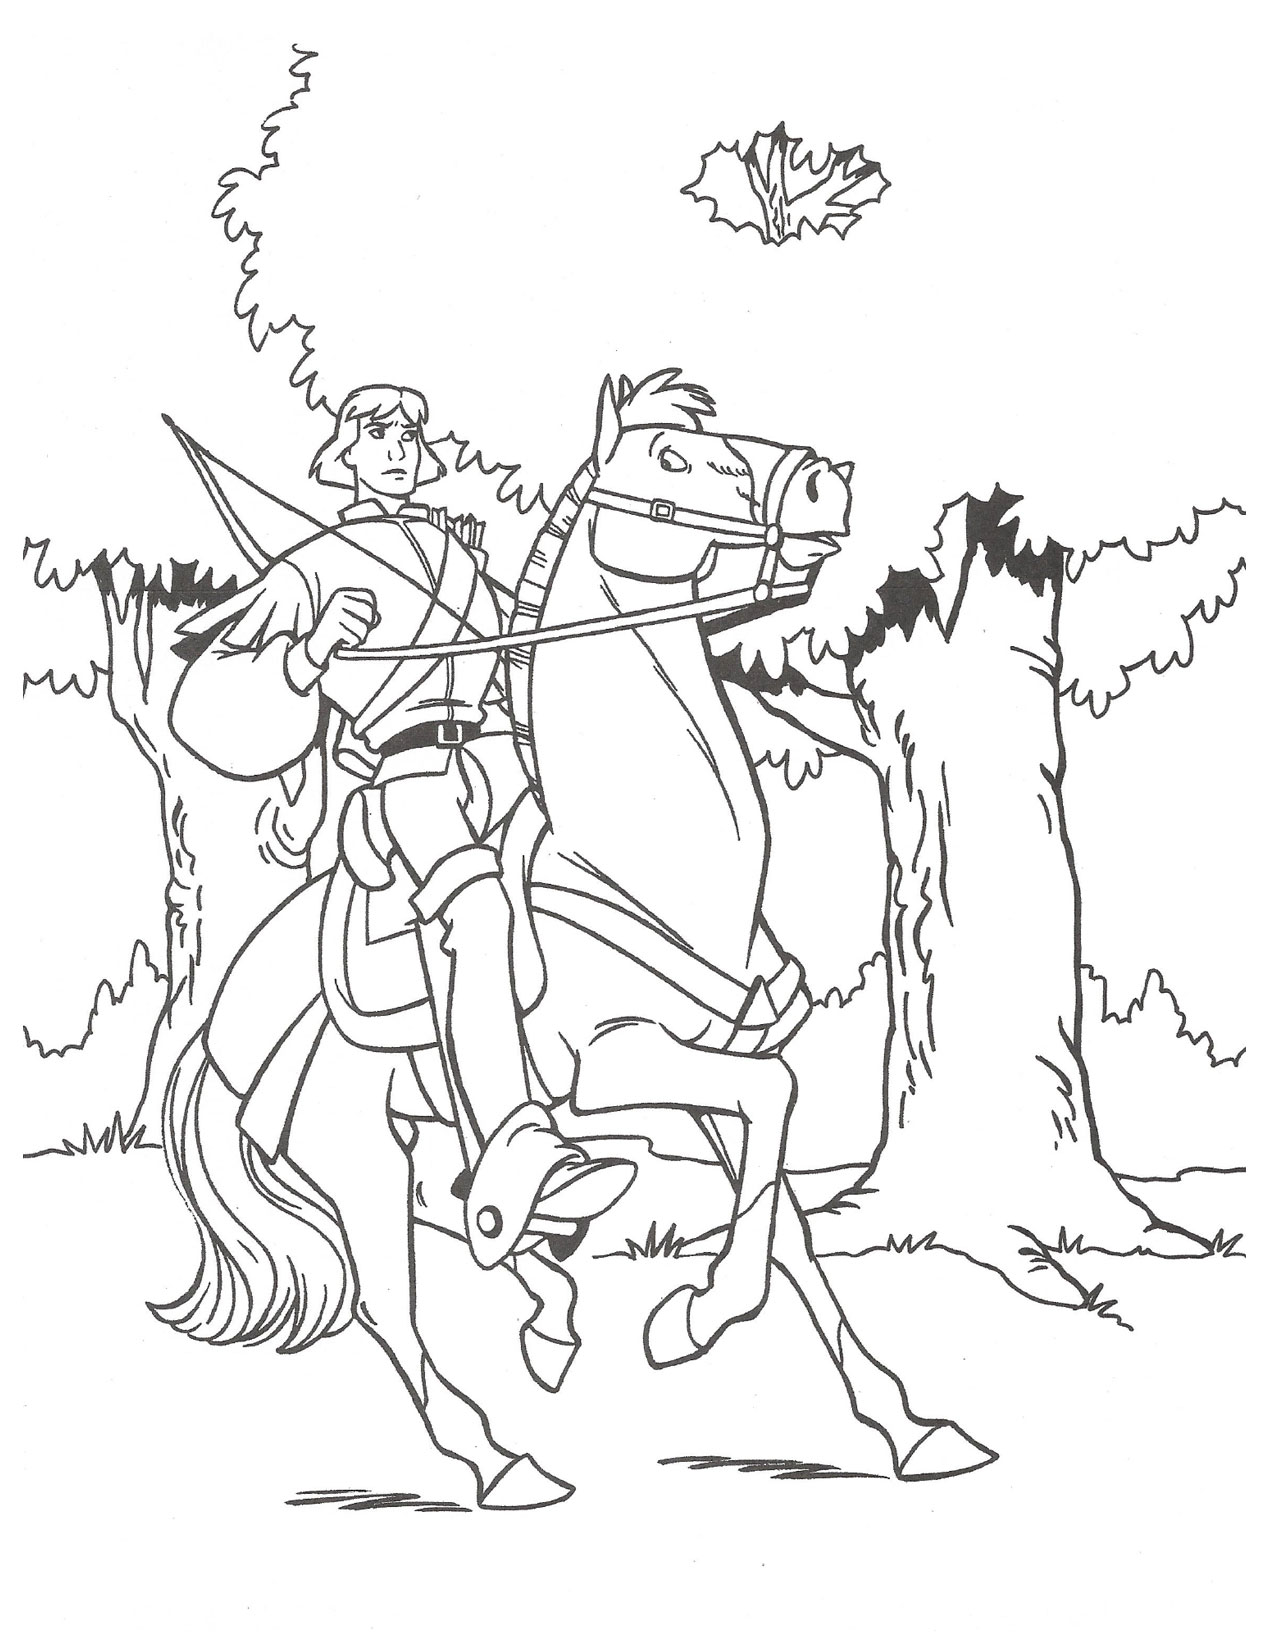 Swan Princess official coloring page 8.png | Princess coloring ... | 1650x1275